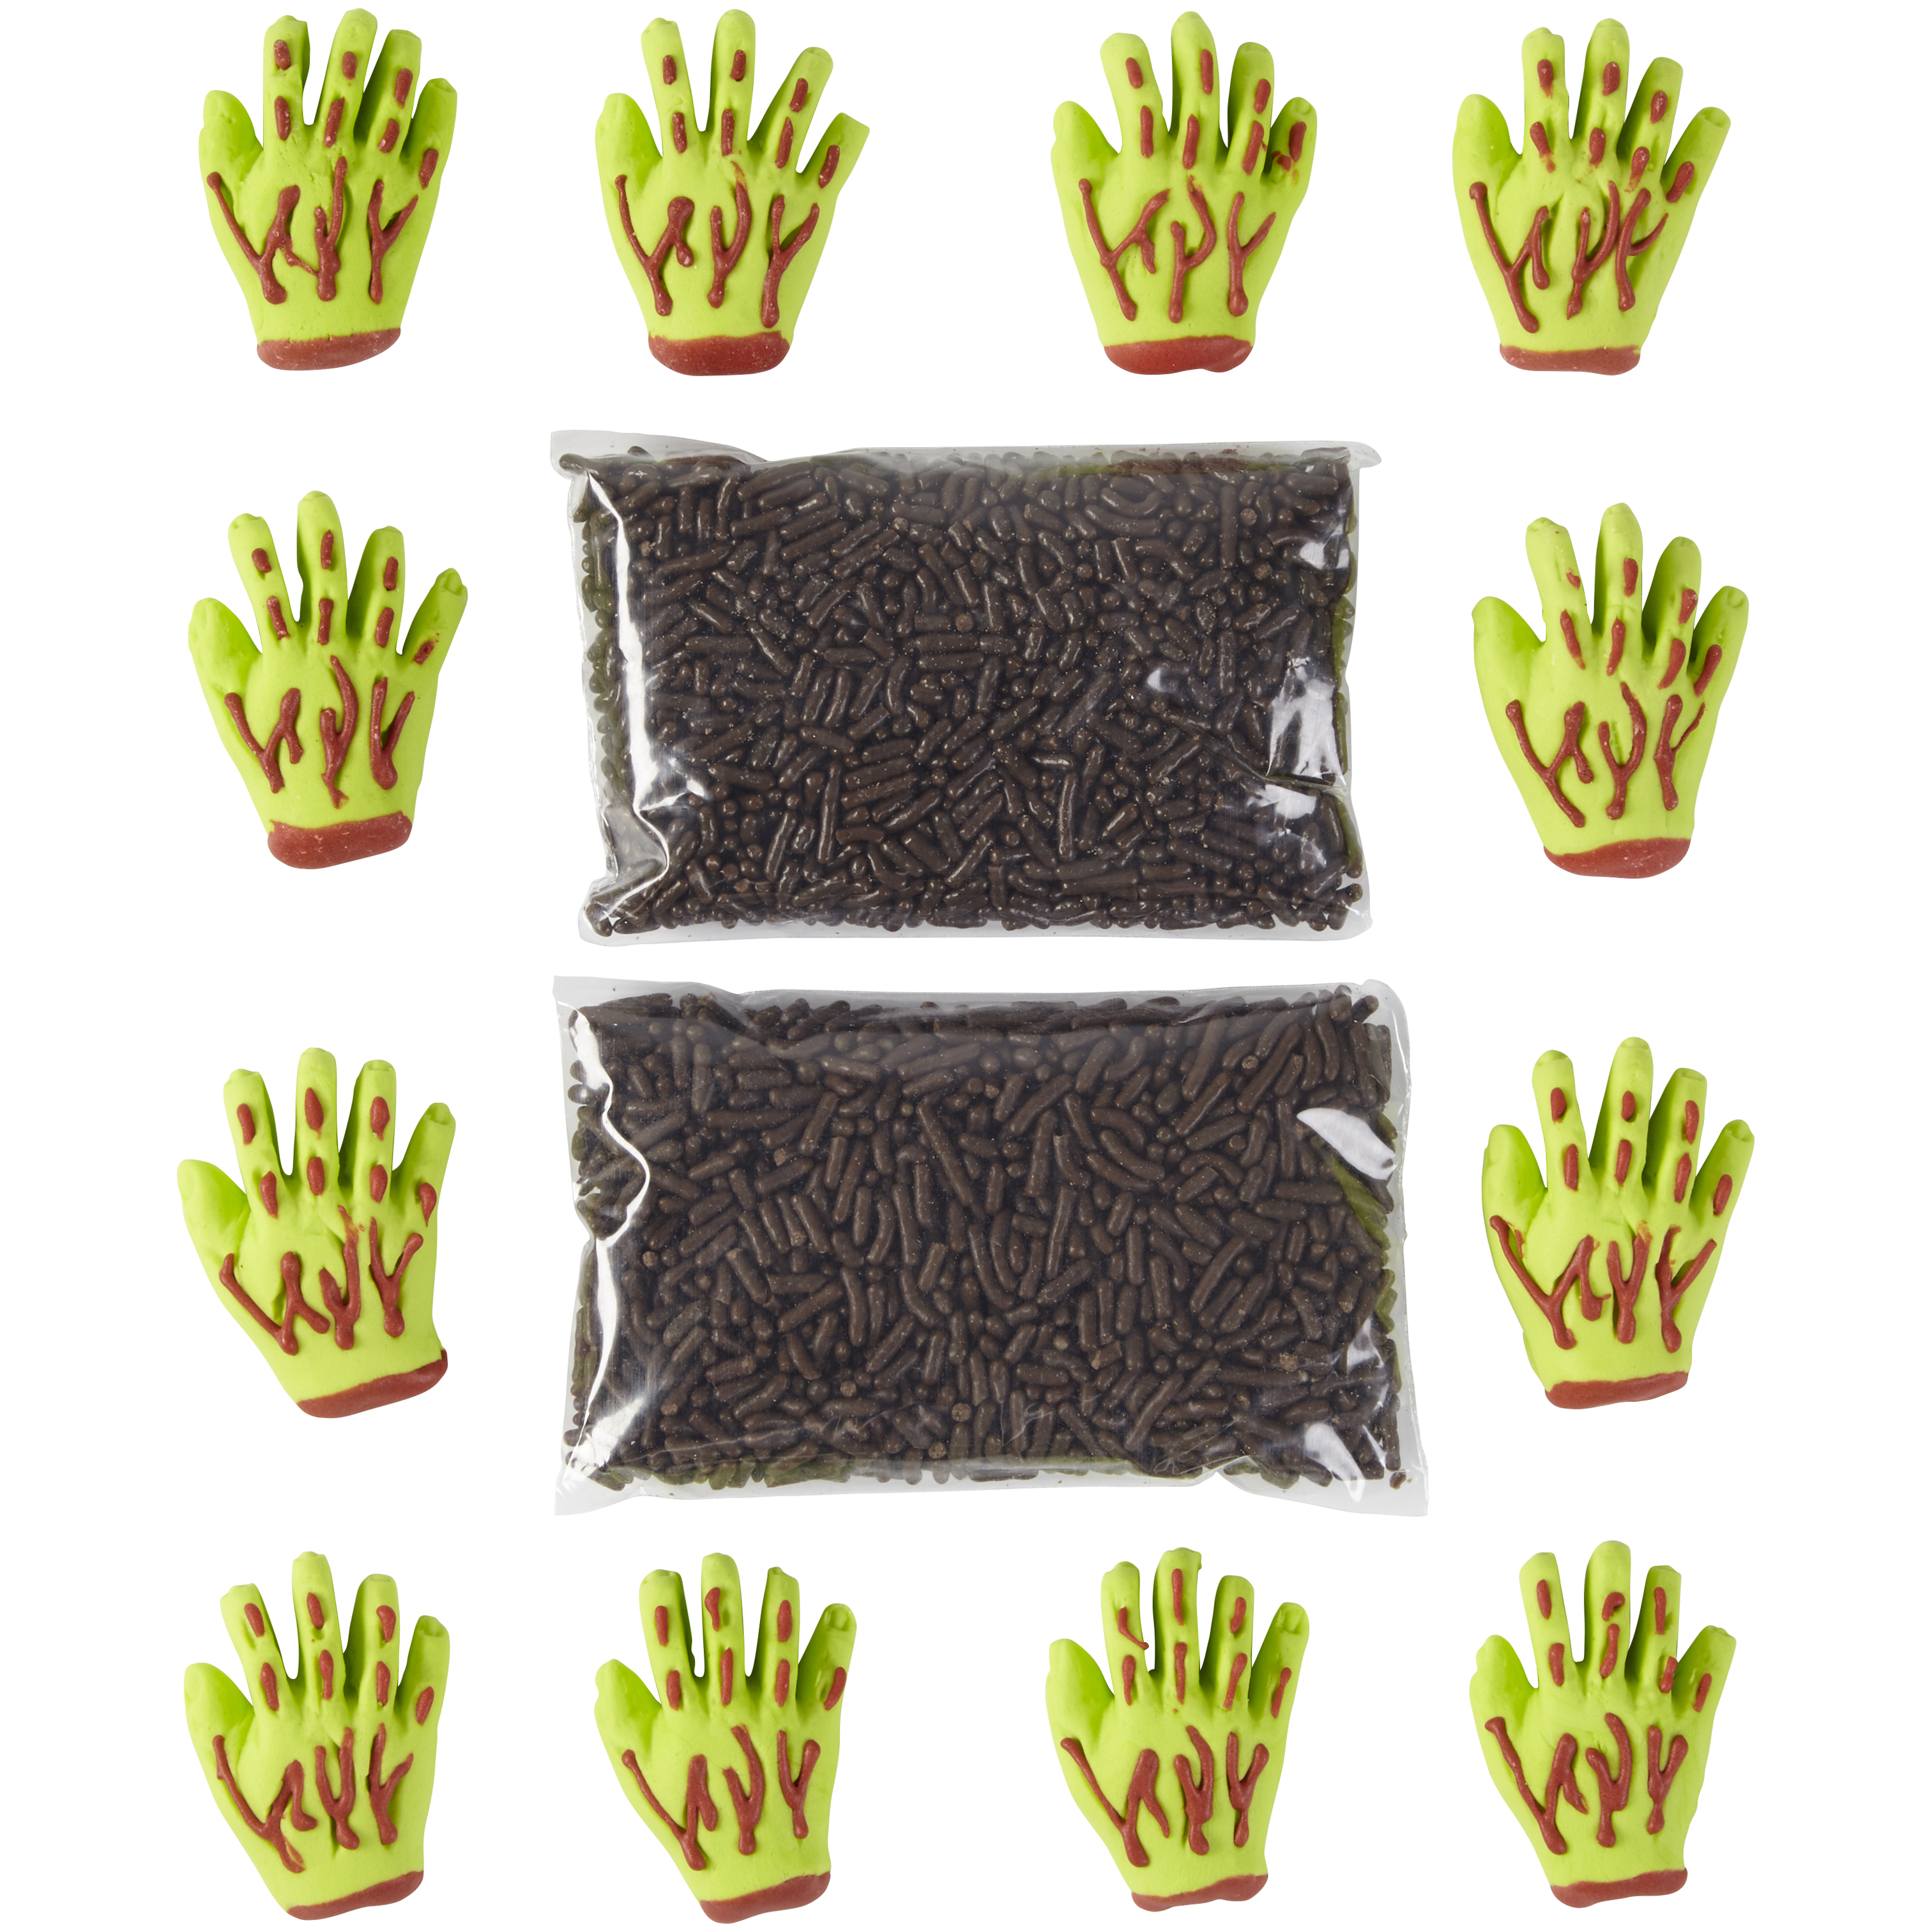 Wilton Candy Told Zombie Hand 6set